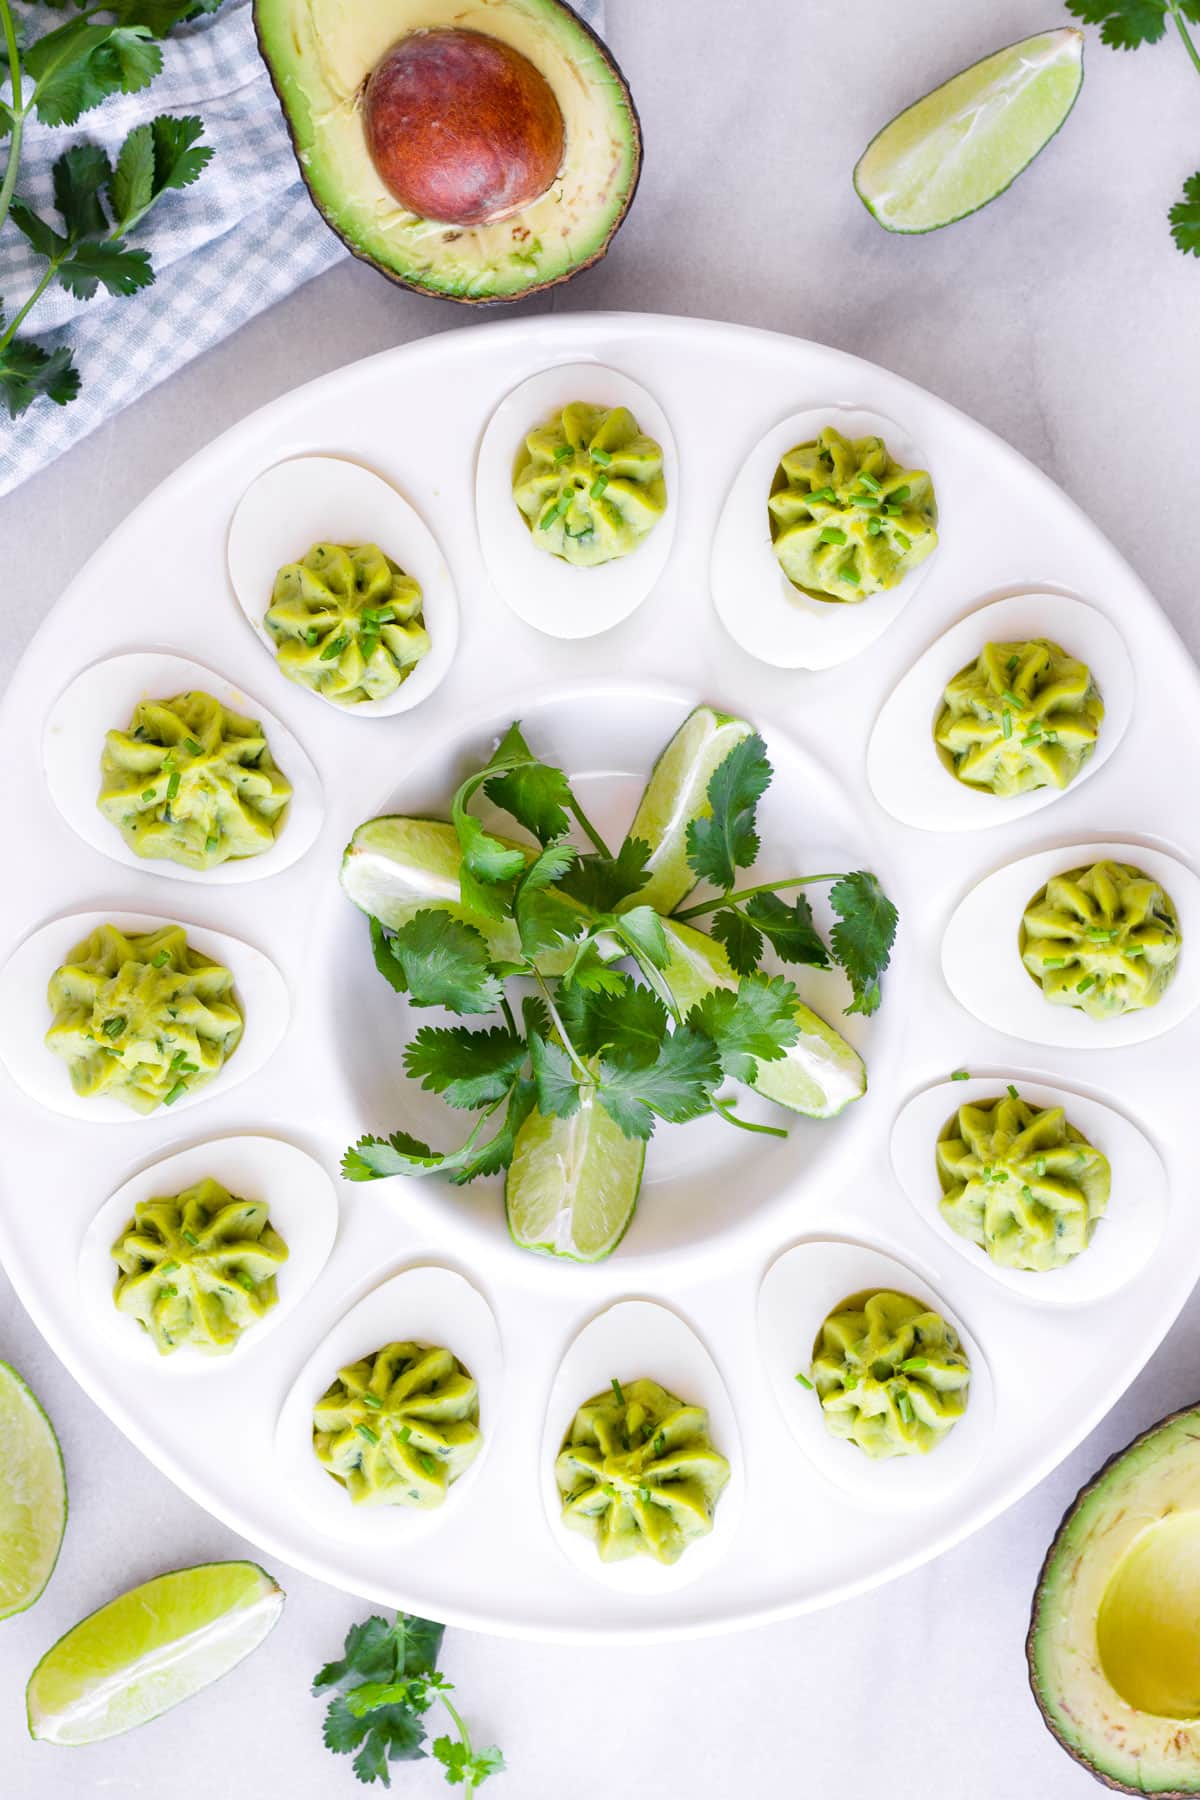 a round plate with twelve deviled eggs and limes with cilantro in the middle